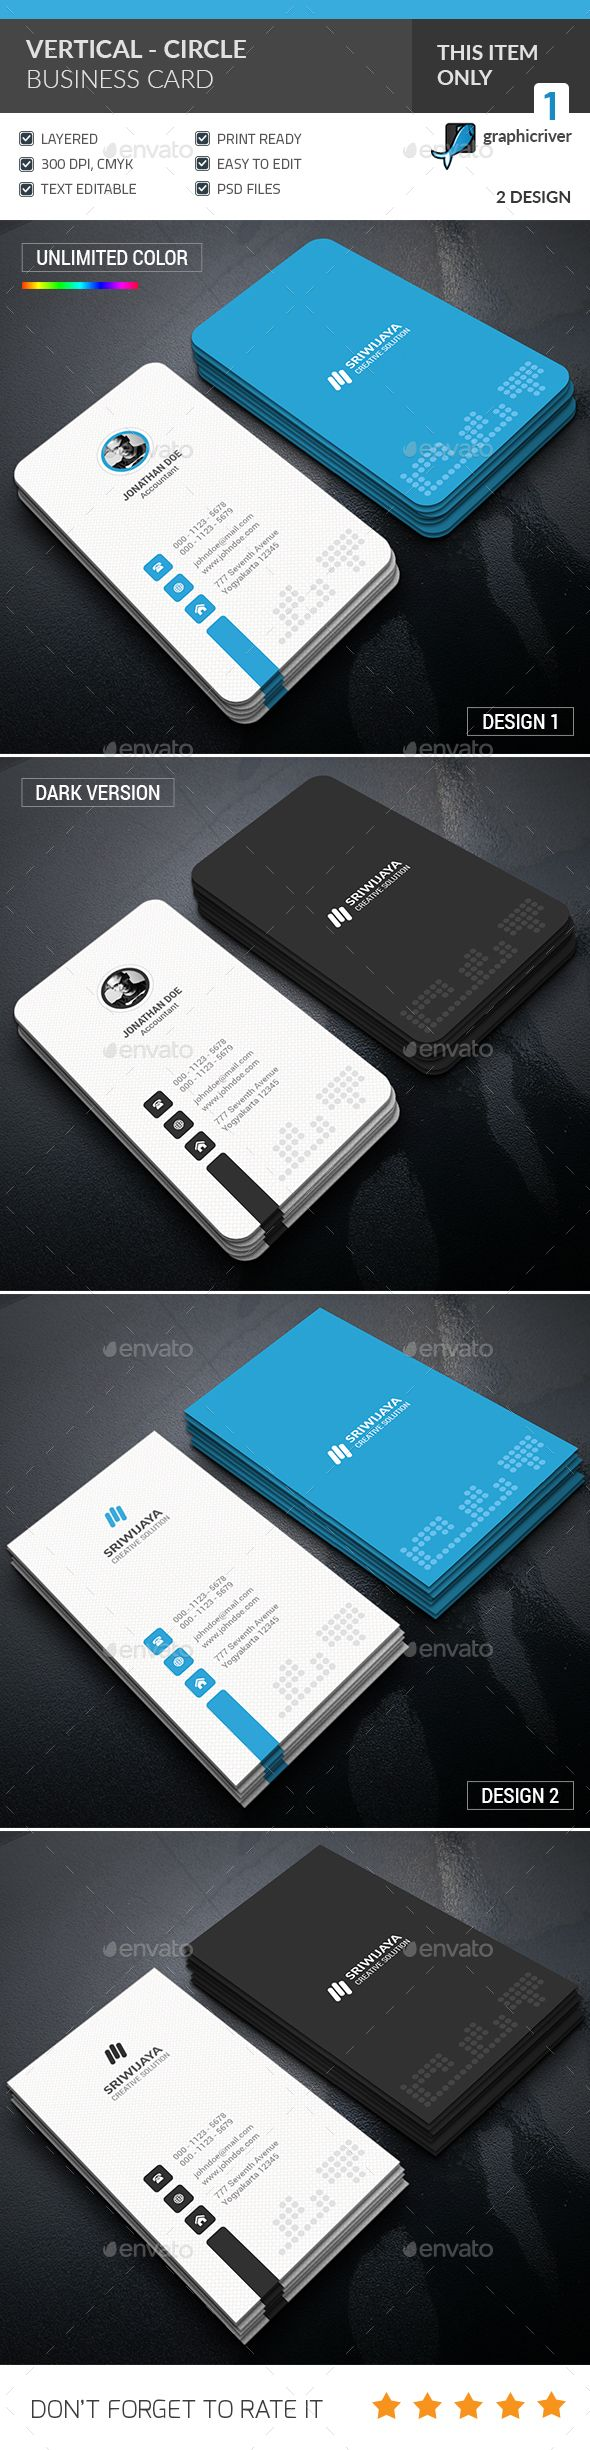 Vertical circle business card template psd download here https vertical circle business card template psd download here httpsgraphicriveritemvertical circle business card 17415411refksioks fbccfo Images